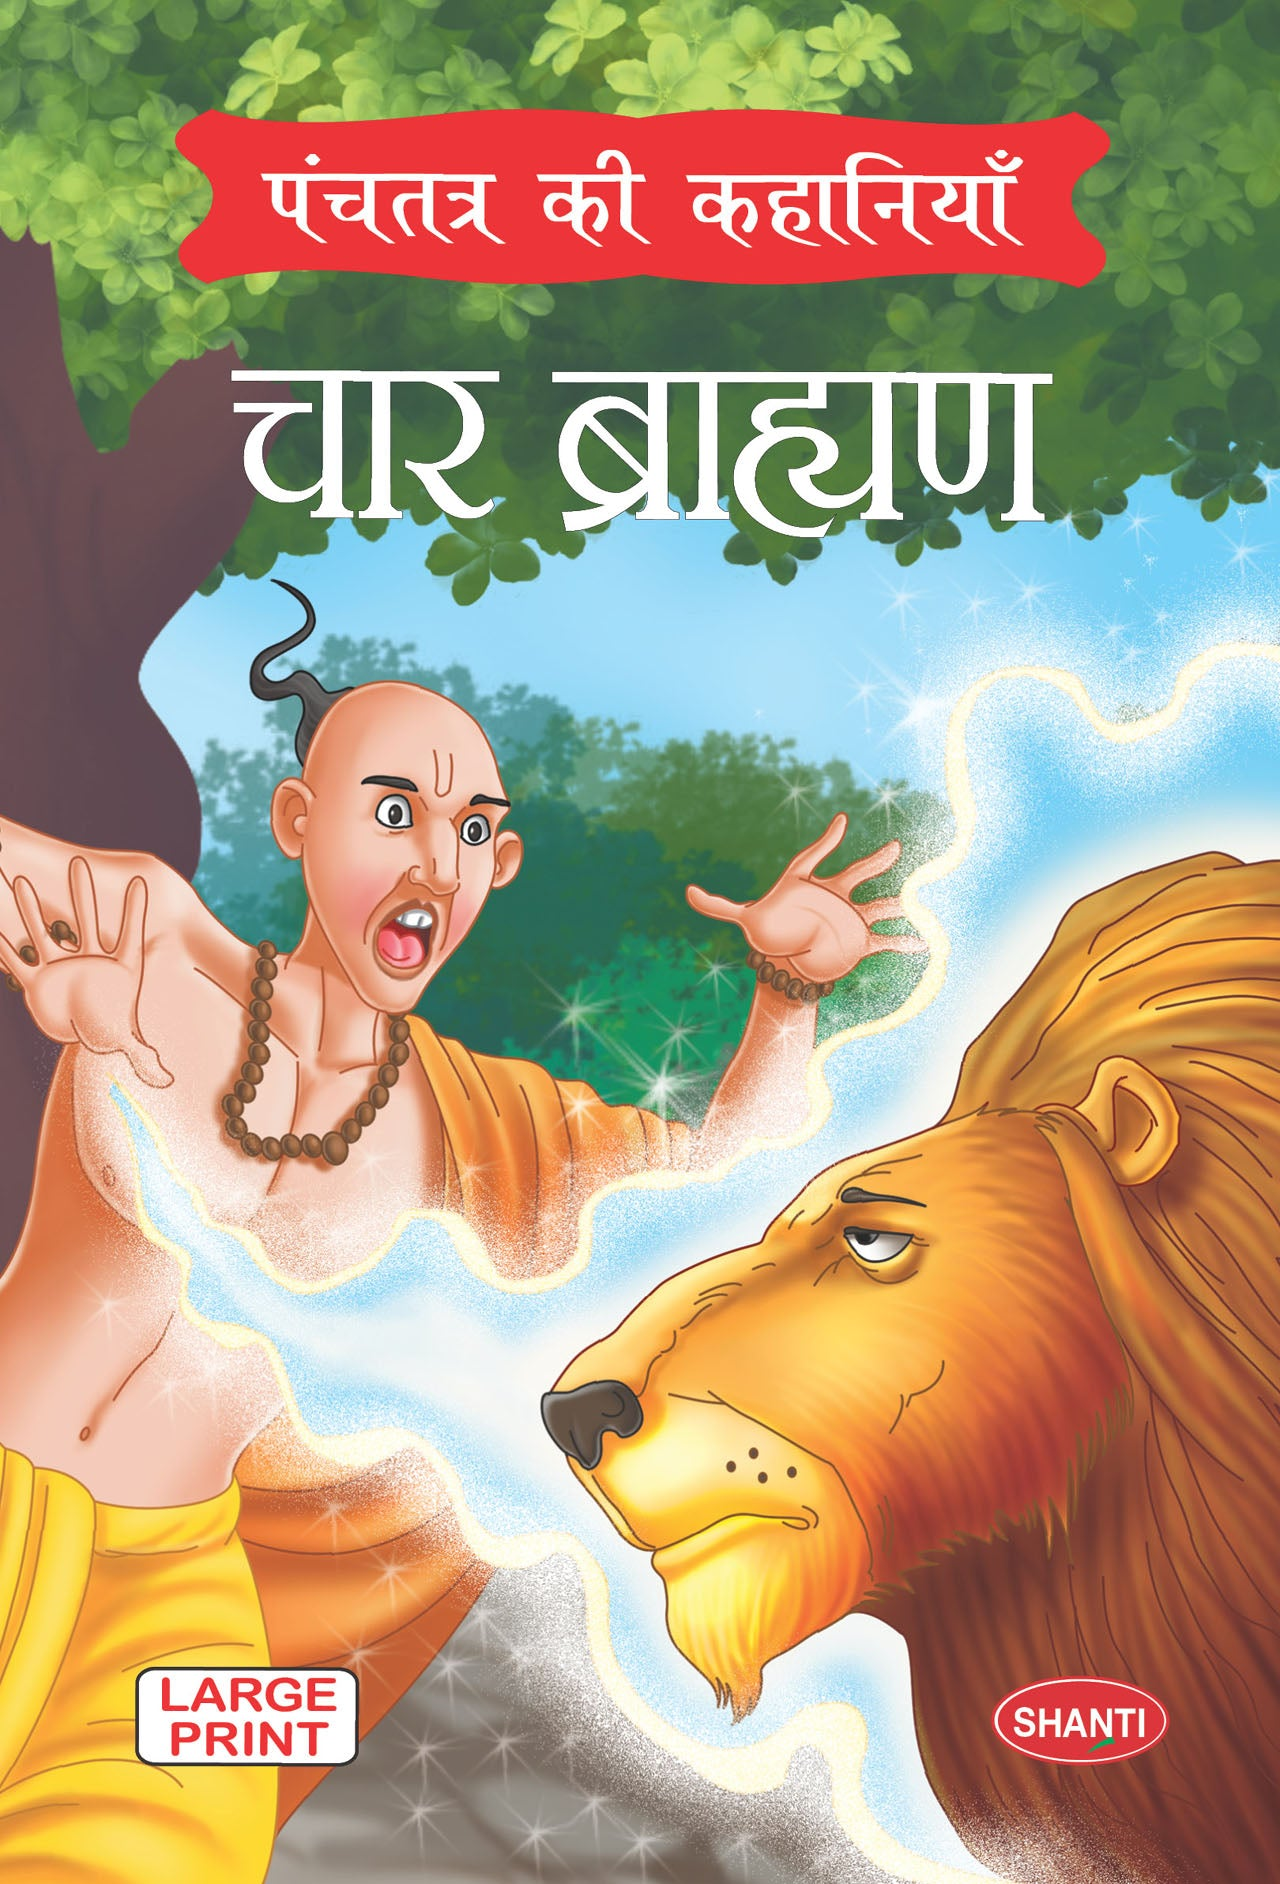 Panchatantra story books-Tales from Panchatantra (Hindi) - Char Brahmin